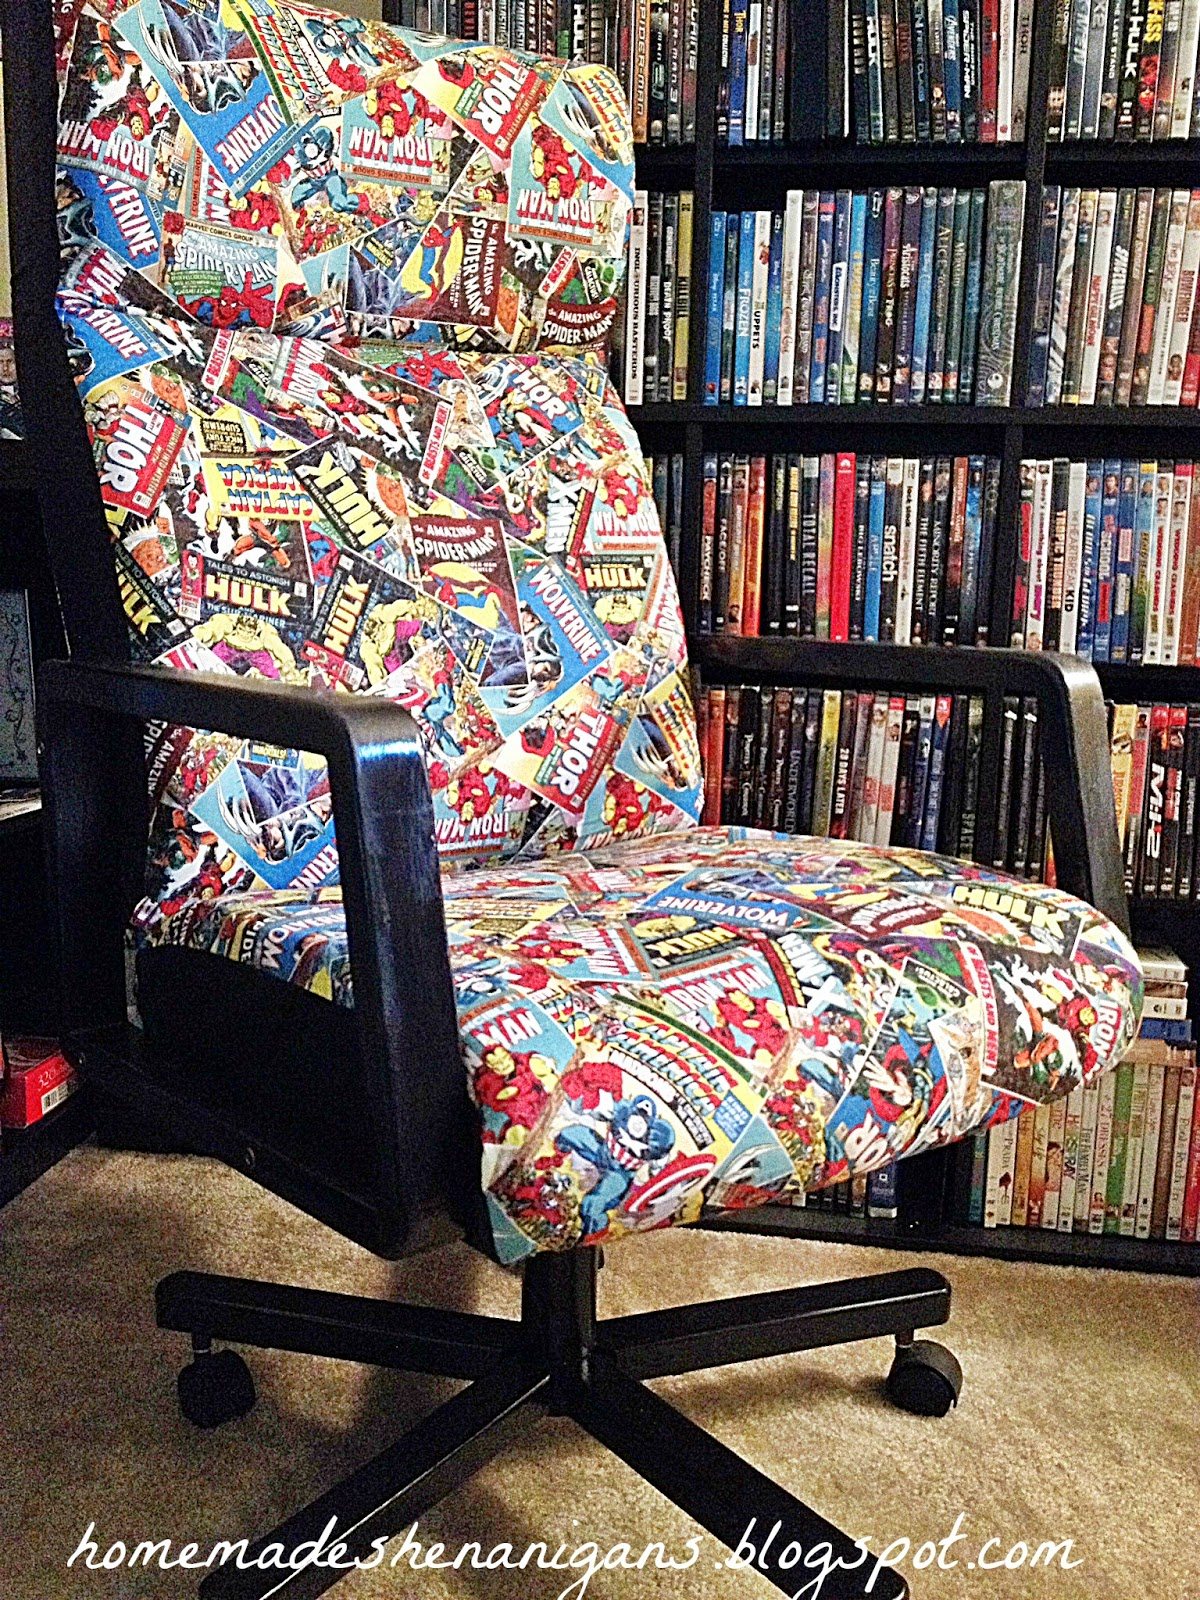 Homemade Shenanigans Superhero Desk Chair